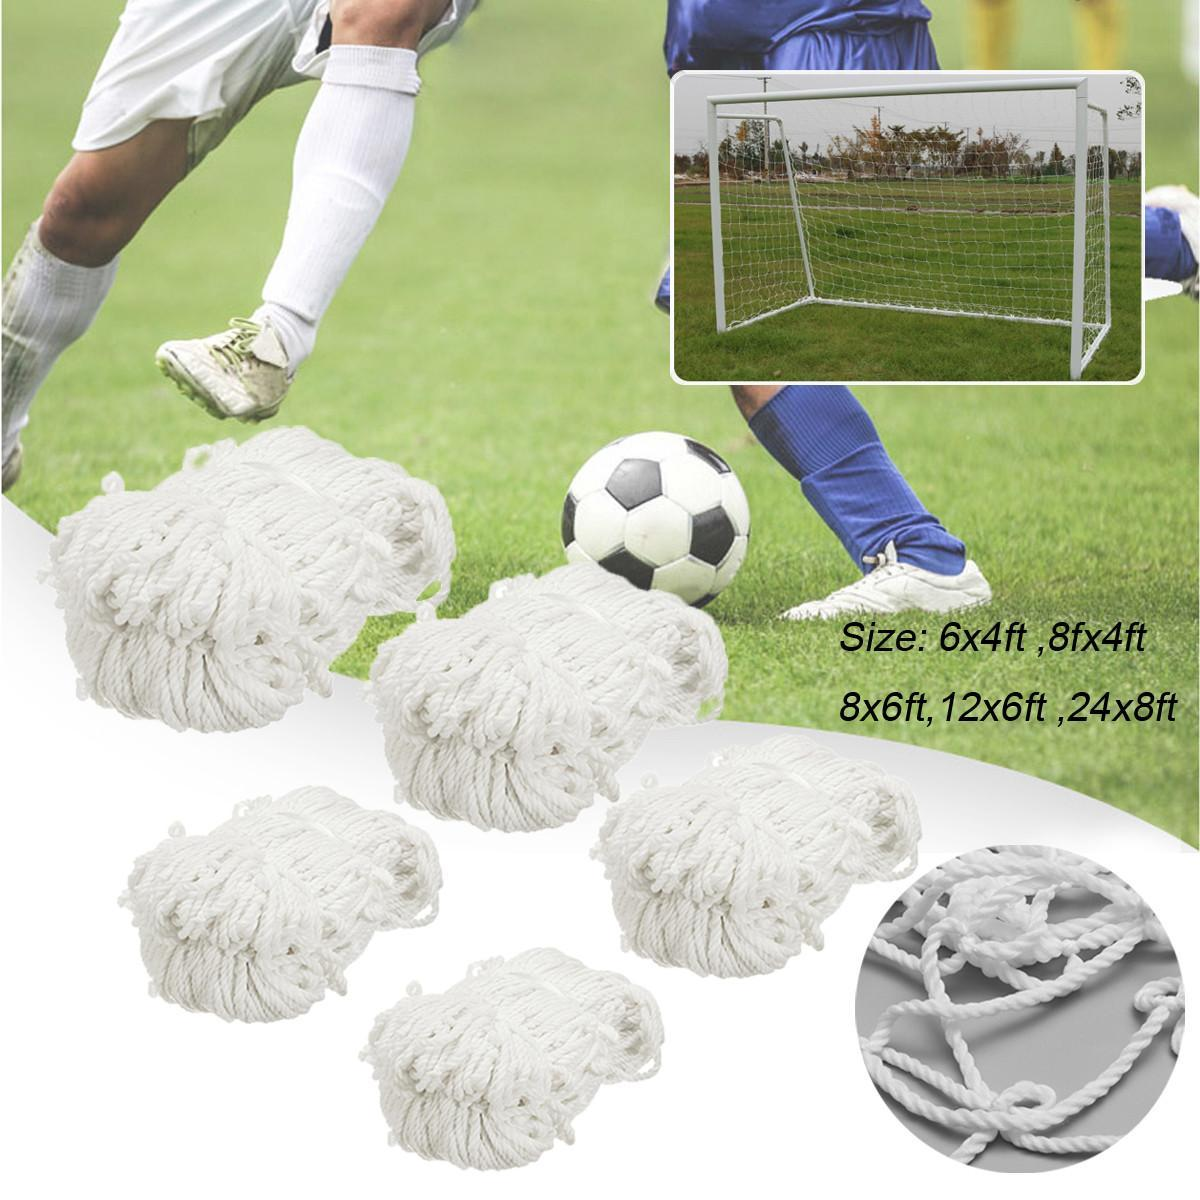 117e7c6bd Football Soccer Goal Post Net Training Match Replace Outdoor Full Size  Adult Kid